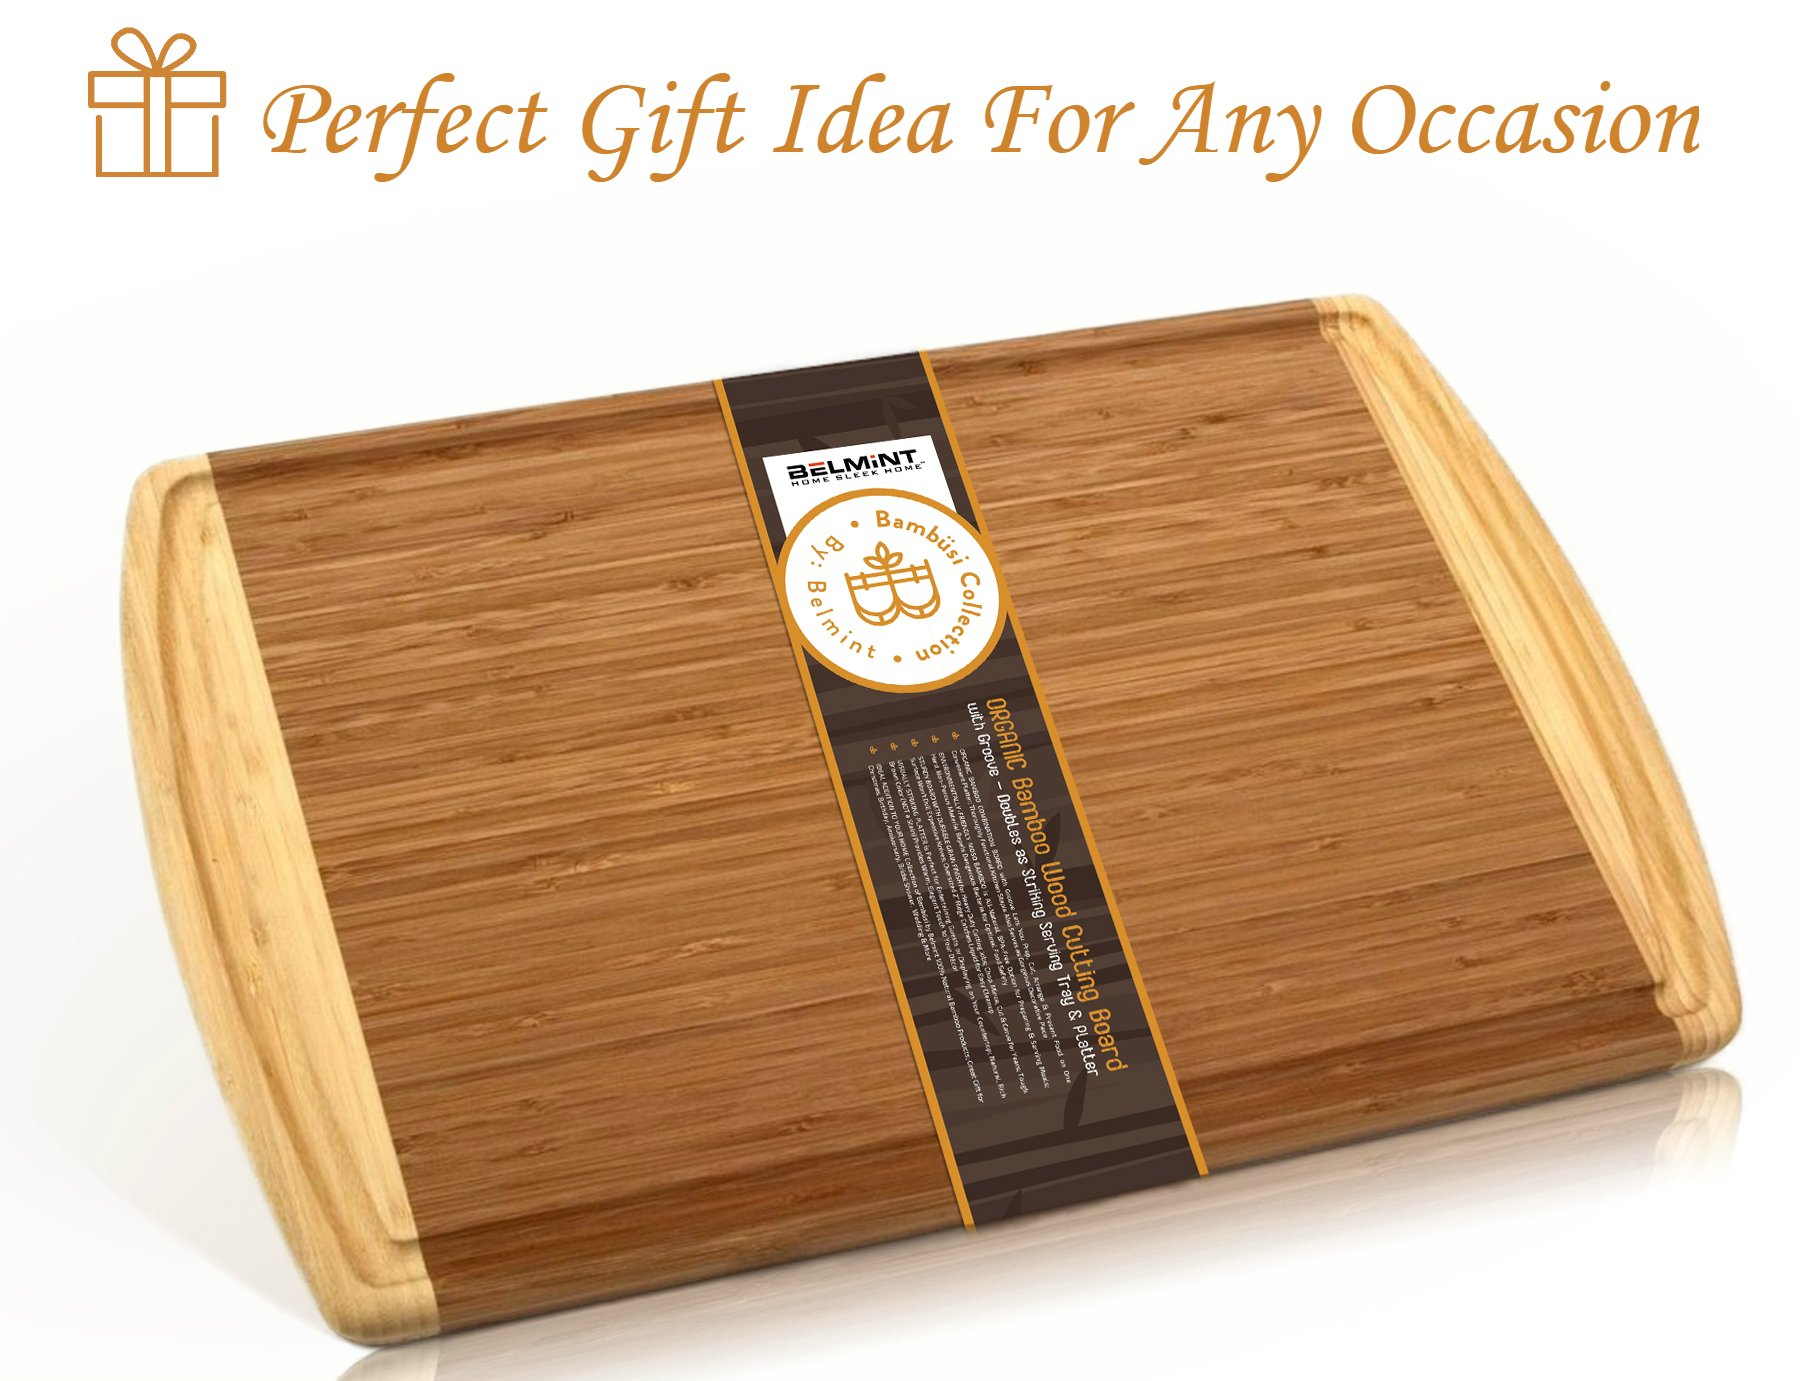 Premium Bamboo Cutting Board Set of 2 Large Chopping Board with Deep juice Groove, Thick Butcher Block. Perfect Gift Idea. By Bambusi